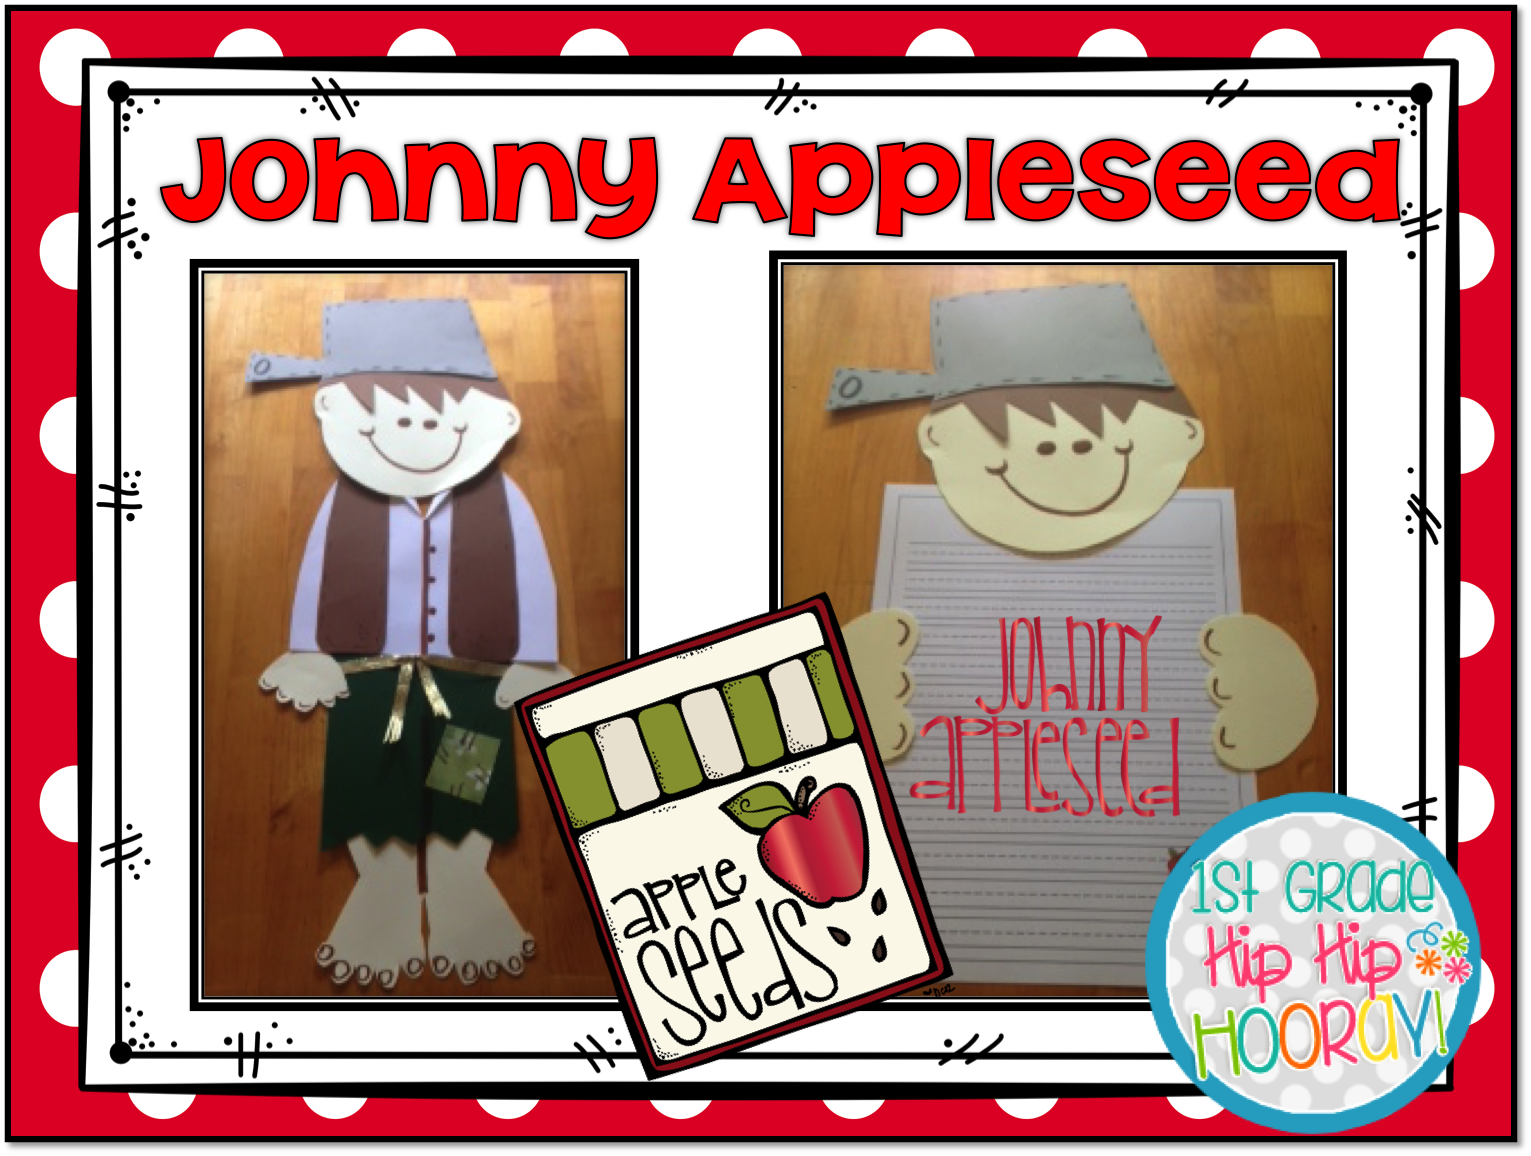 1st Grade Hip Hip Hooray Fall Is Apples And Johnny Appleseed